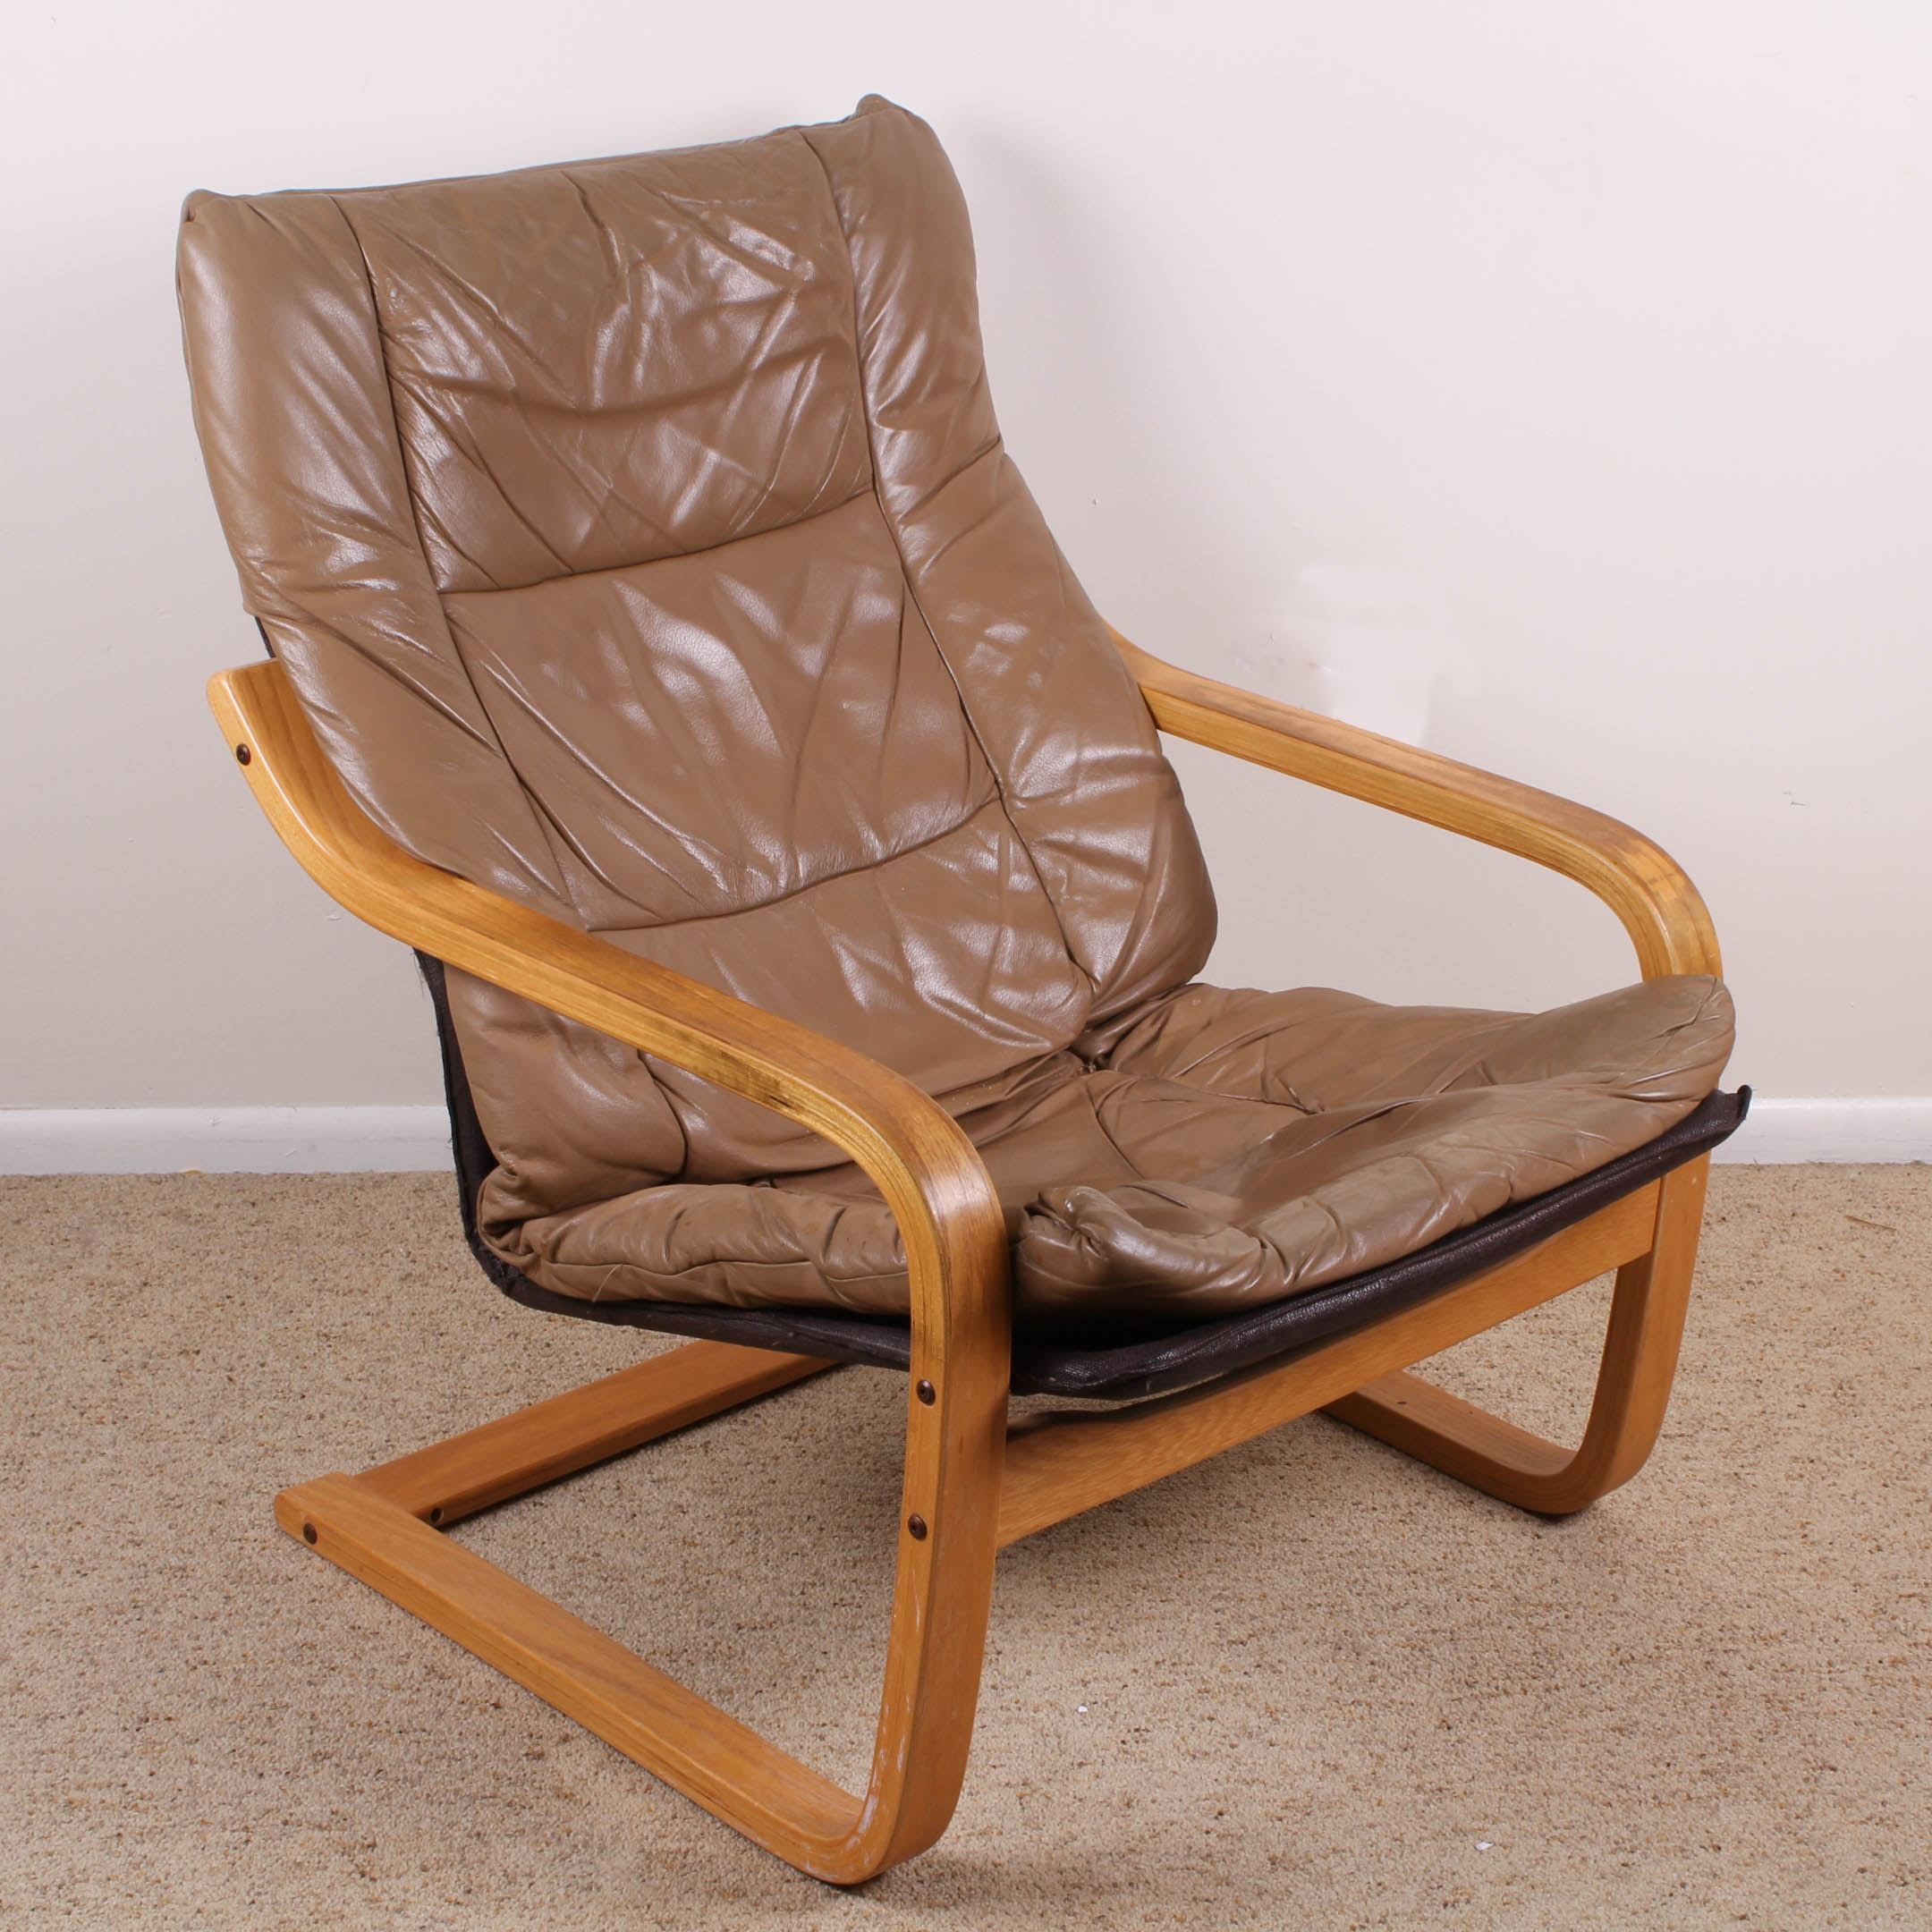 Incroyable Vintage Cantilevered Wood Framed Sling Chair With Leather Seat Cushion ...